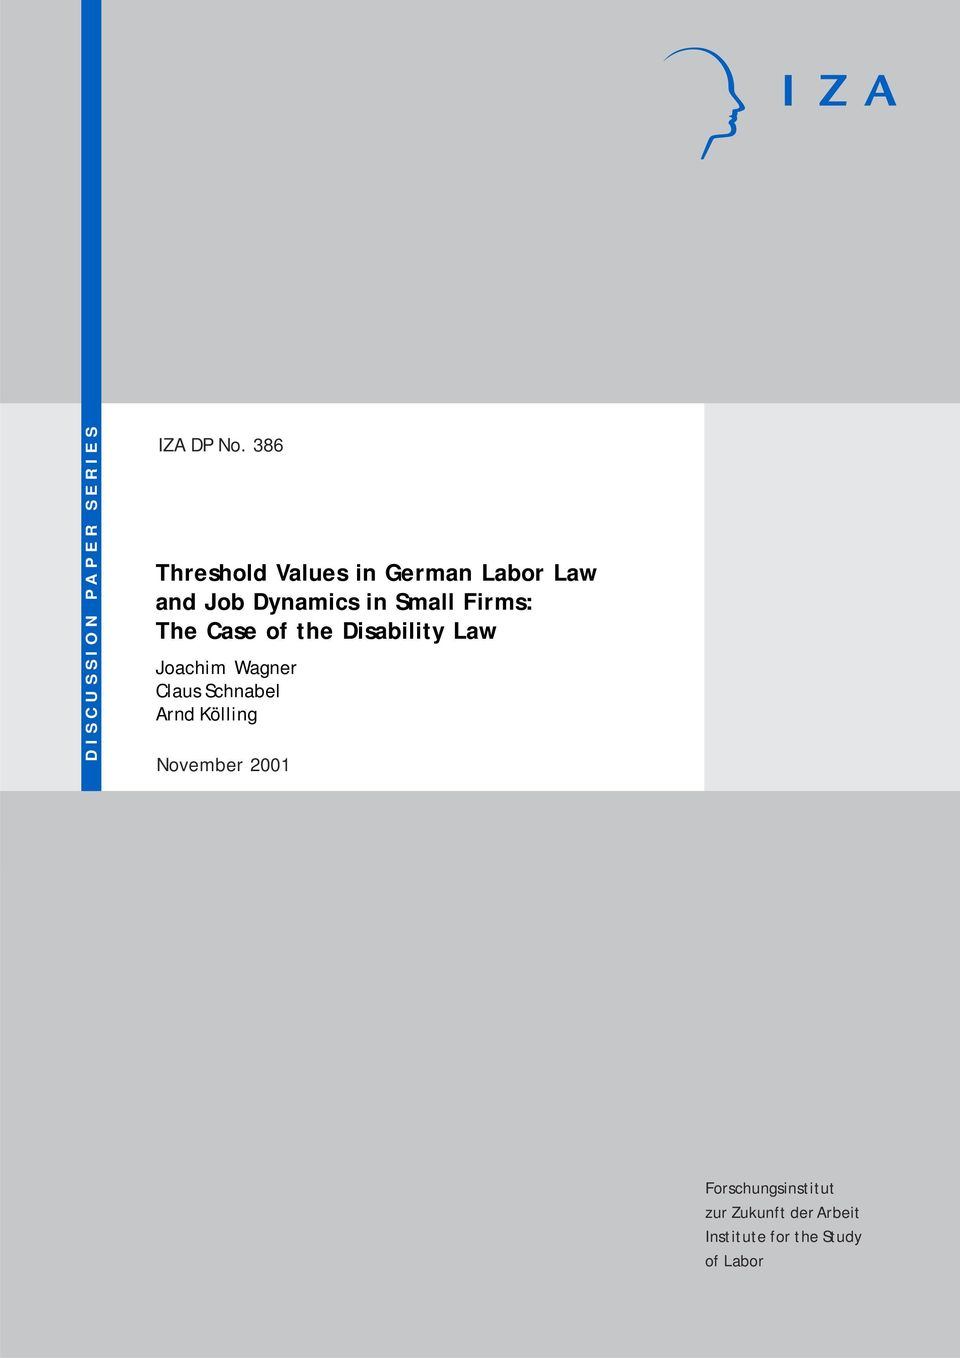 Firms: The Case of the Disability Law Joachim Wagner Claus Schnabel